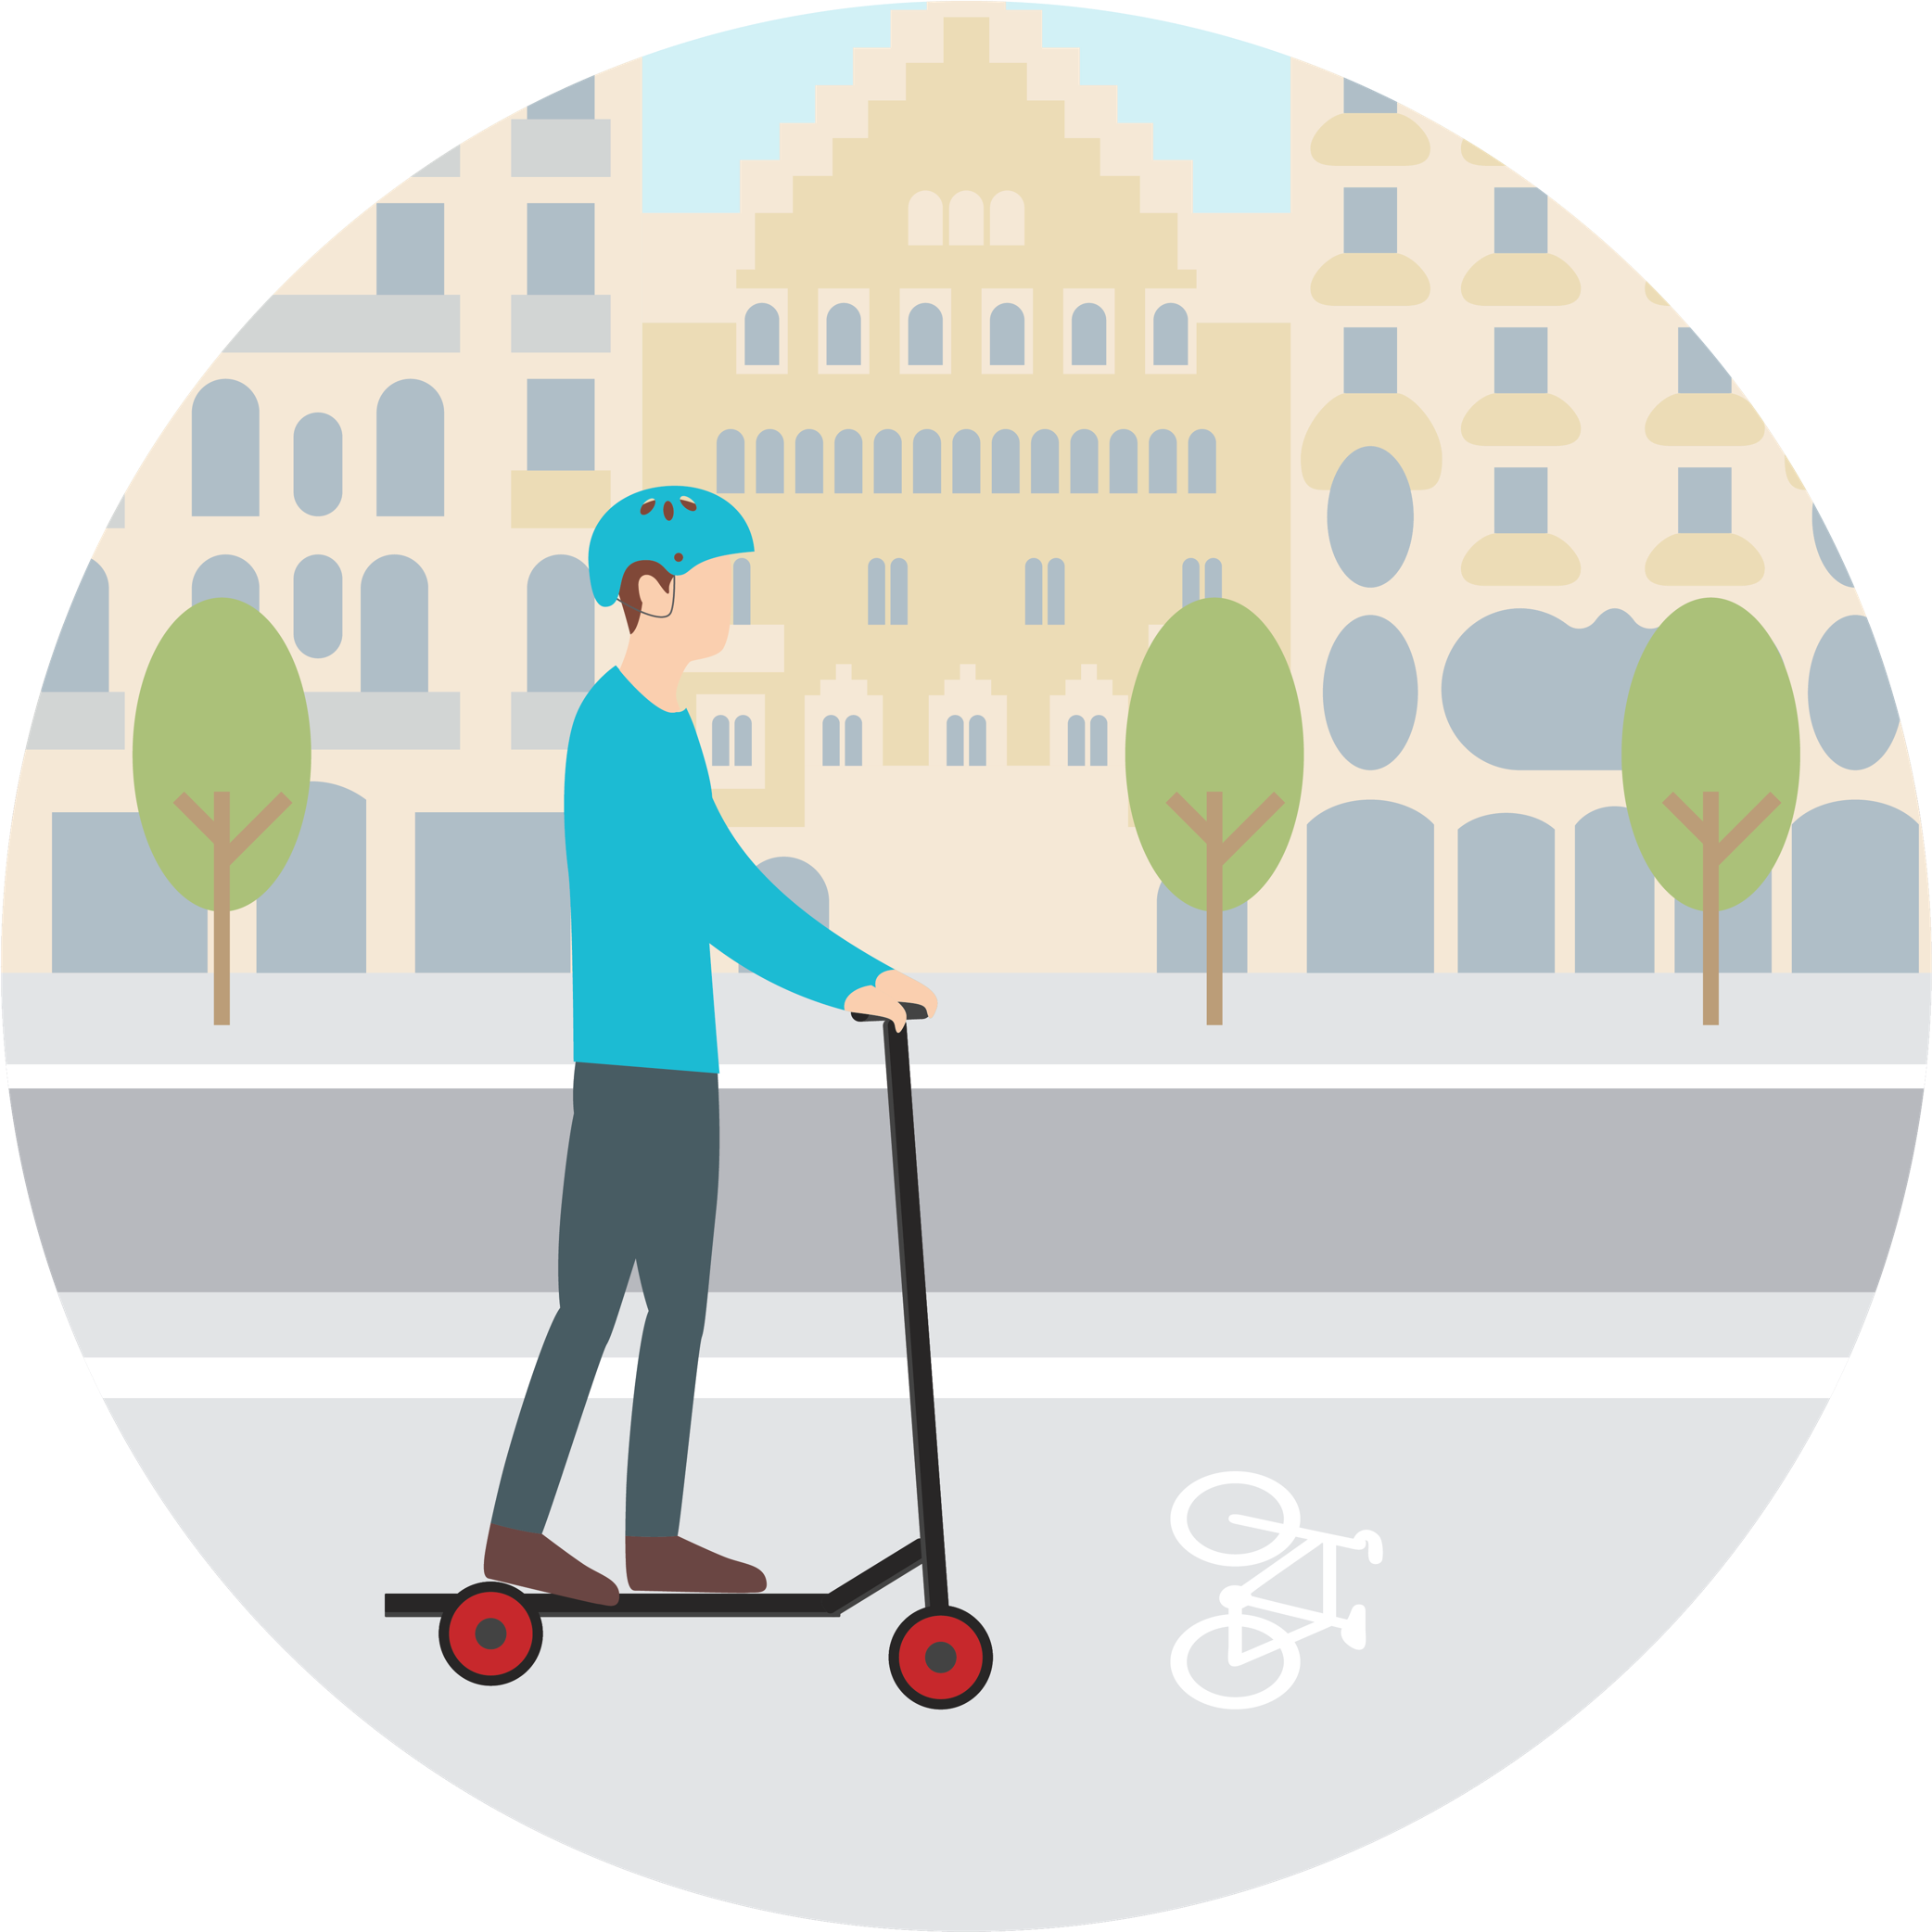 Can I ride electric scooters on the bike lanes on sidewalks in Barcelona?